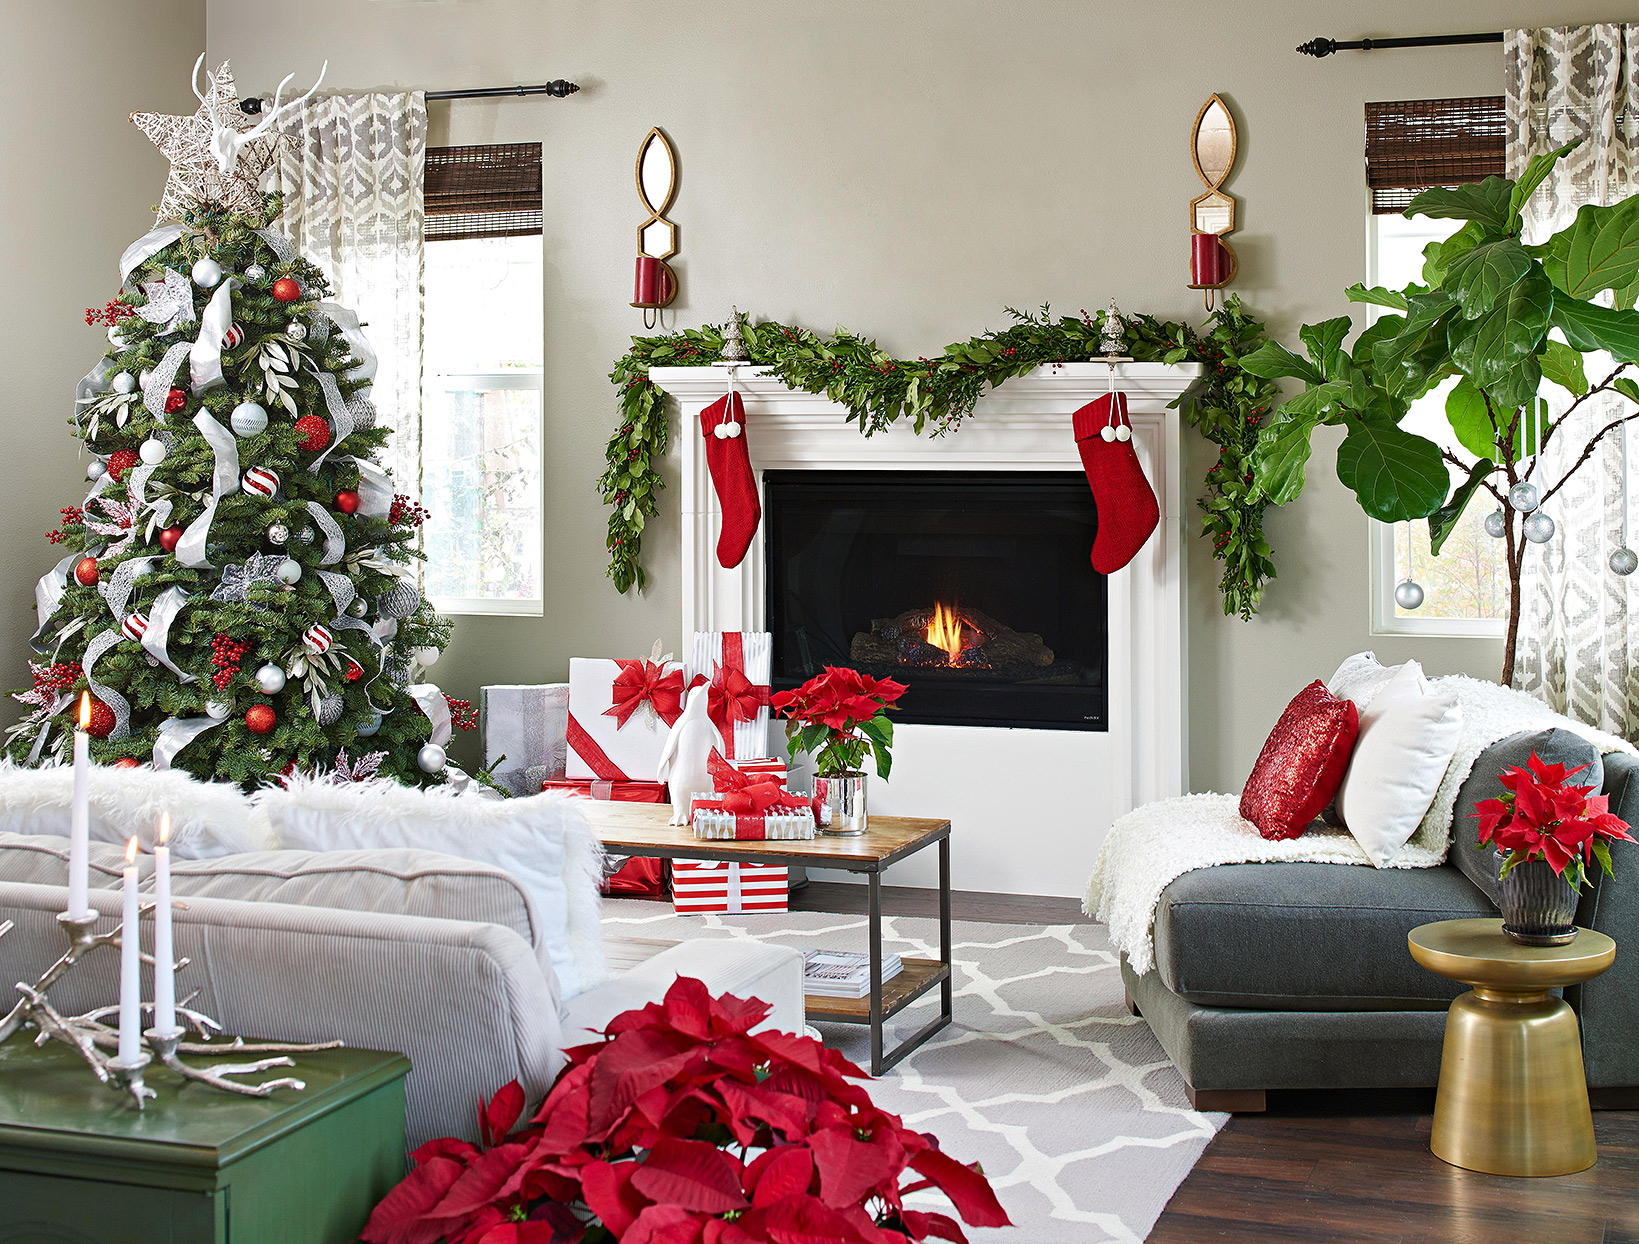 red and silver Christmas décor, tree, and stockings in modern living room with taupe walls